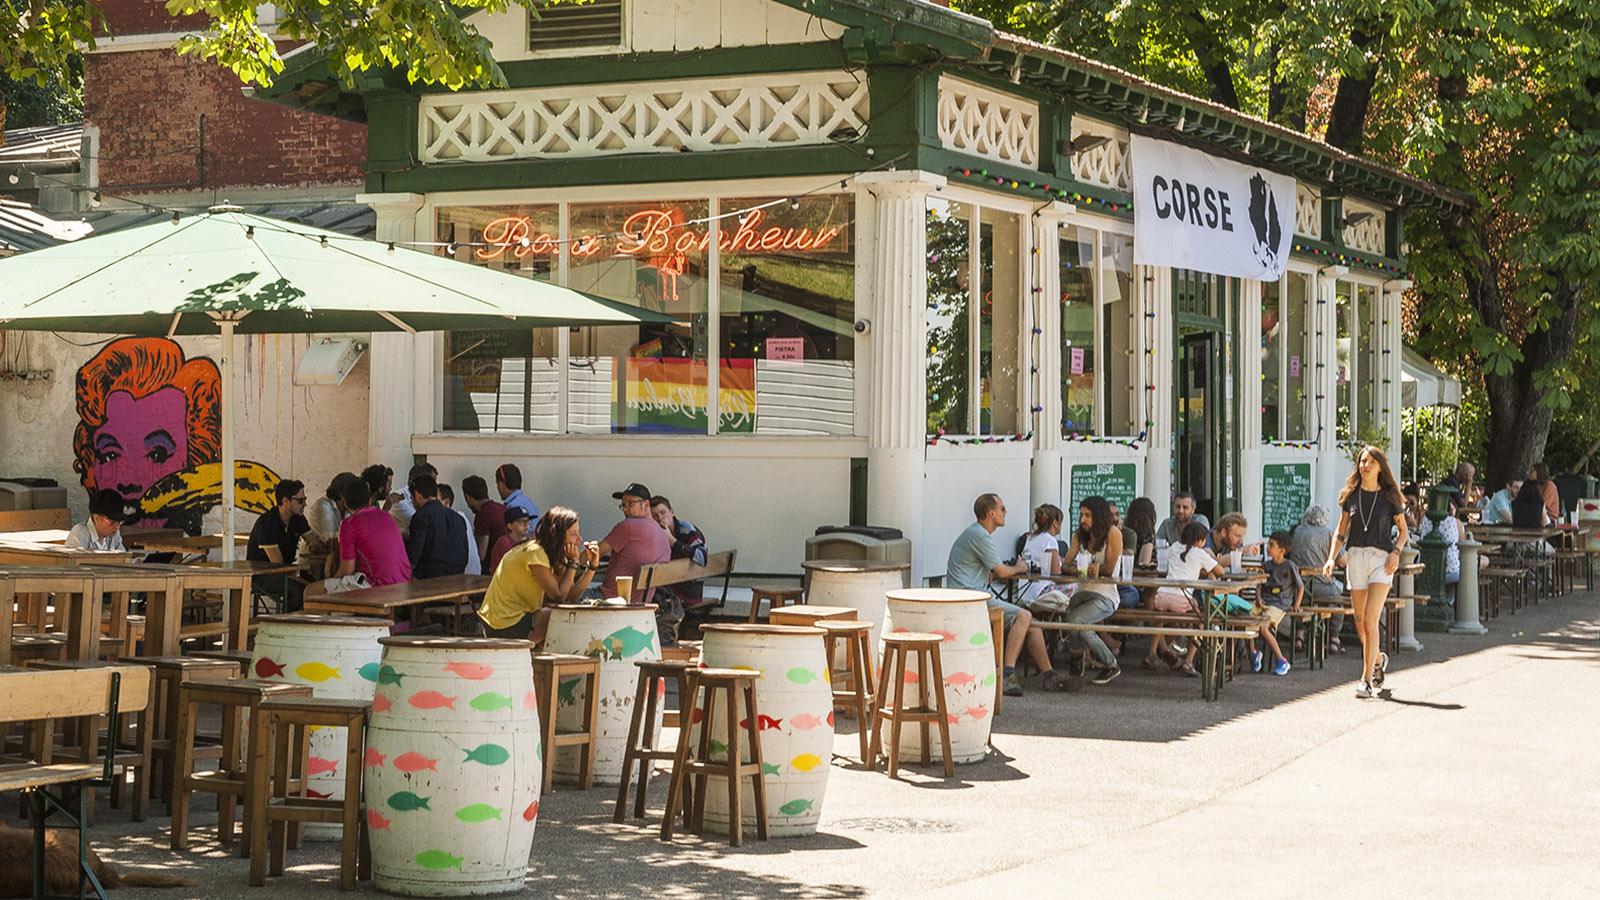 Die Bar im Park Buttes-Chaumont in Paris. Foto: Hilke Maunder